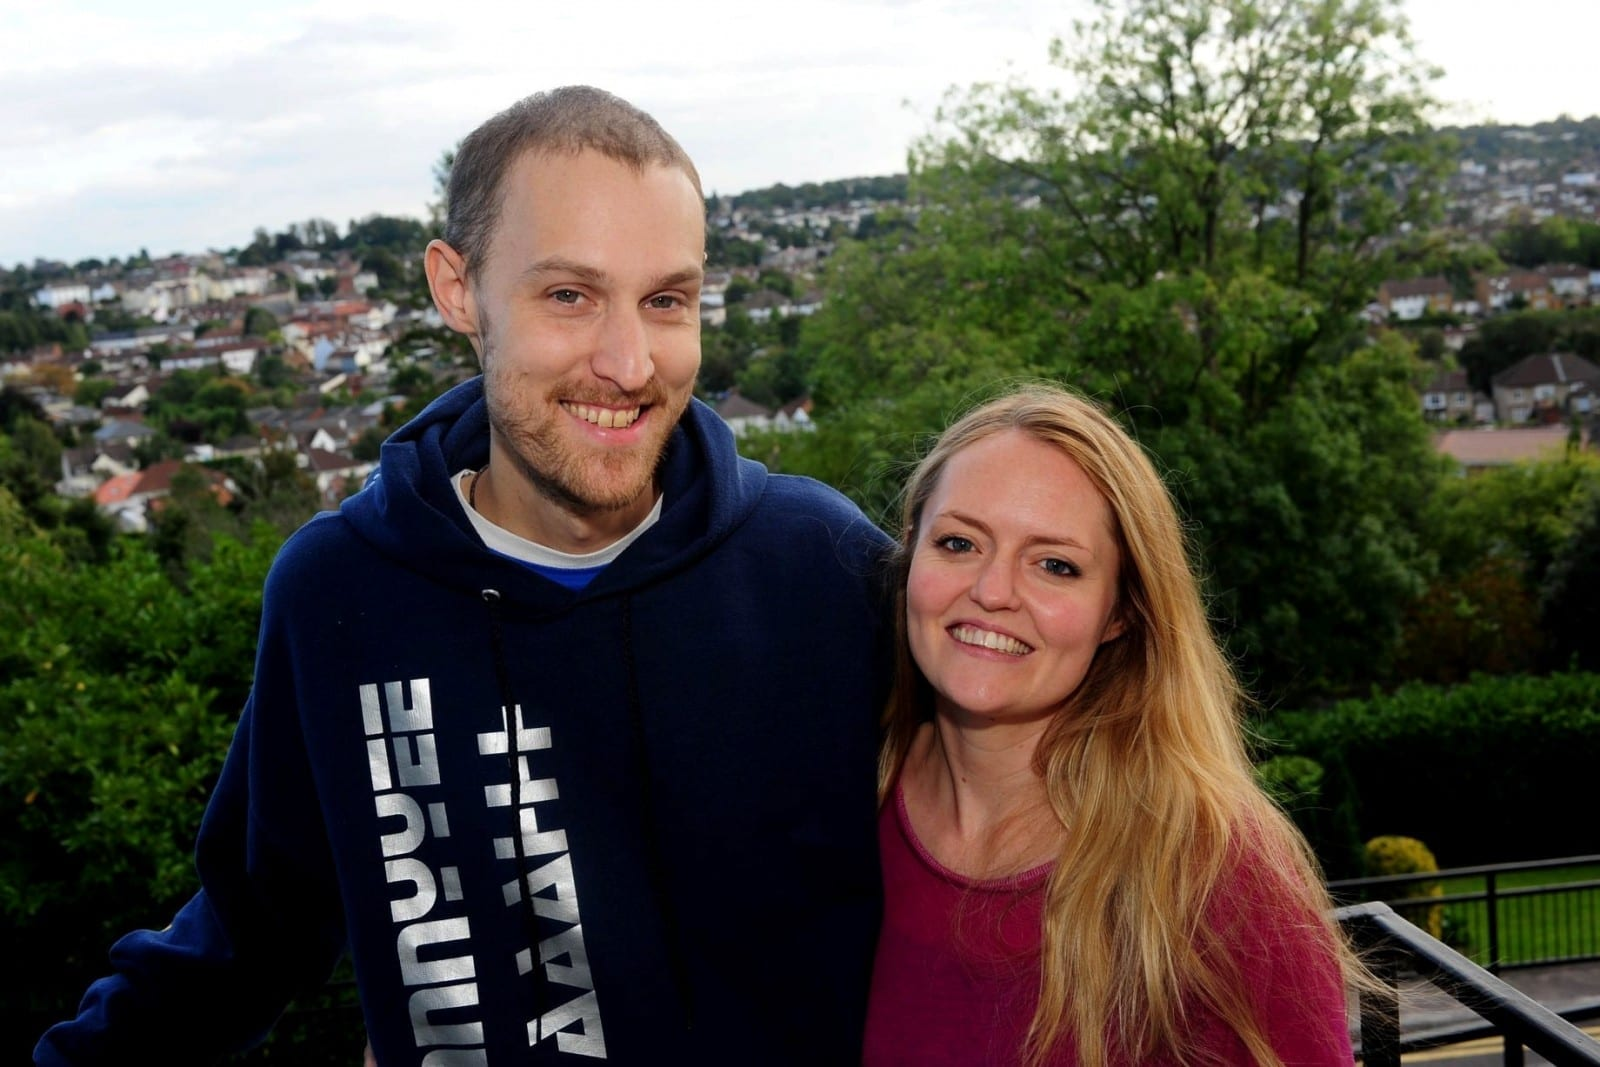 Man Whose Life Was Saved After His Wife Launched One Of The Biggest Ever Crowd Funds Has Announced They Are Having A Baby